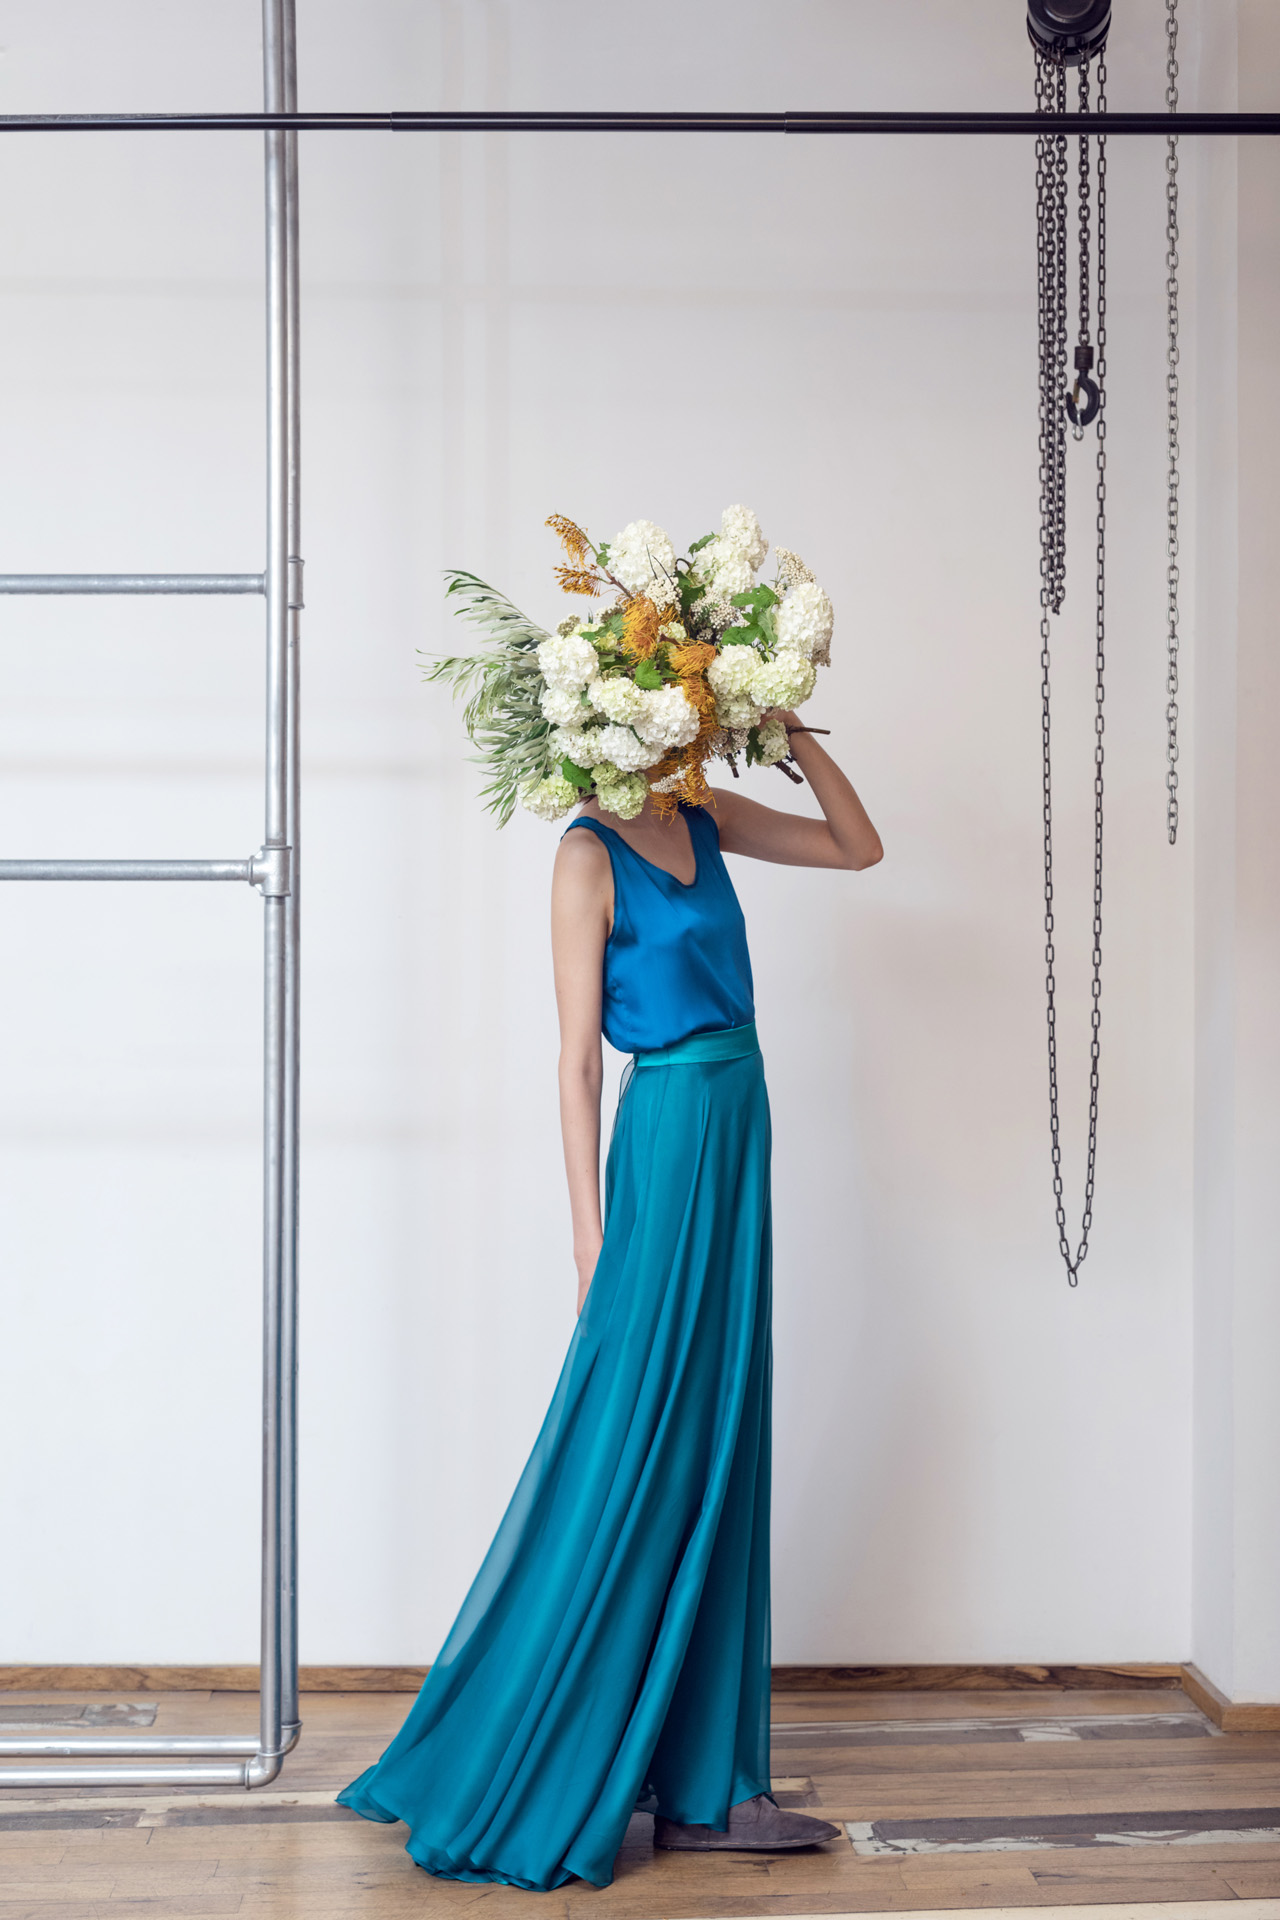 Lara Khoury | LK Stripped | Capsule 1-2019 | 12- Cobalt Blue Bell Curve Hem Top and Cerulean Blue Muslin Flare Skirt 1.jpg